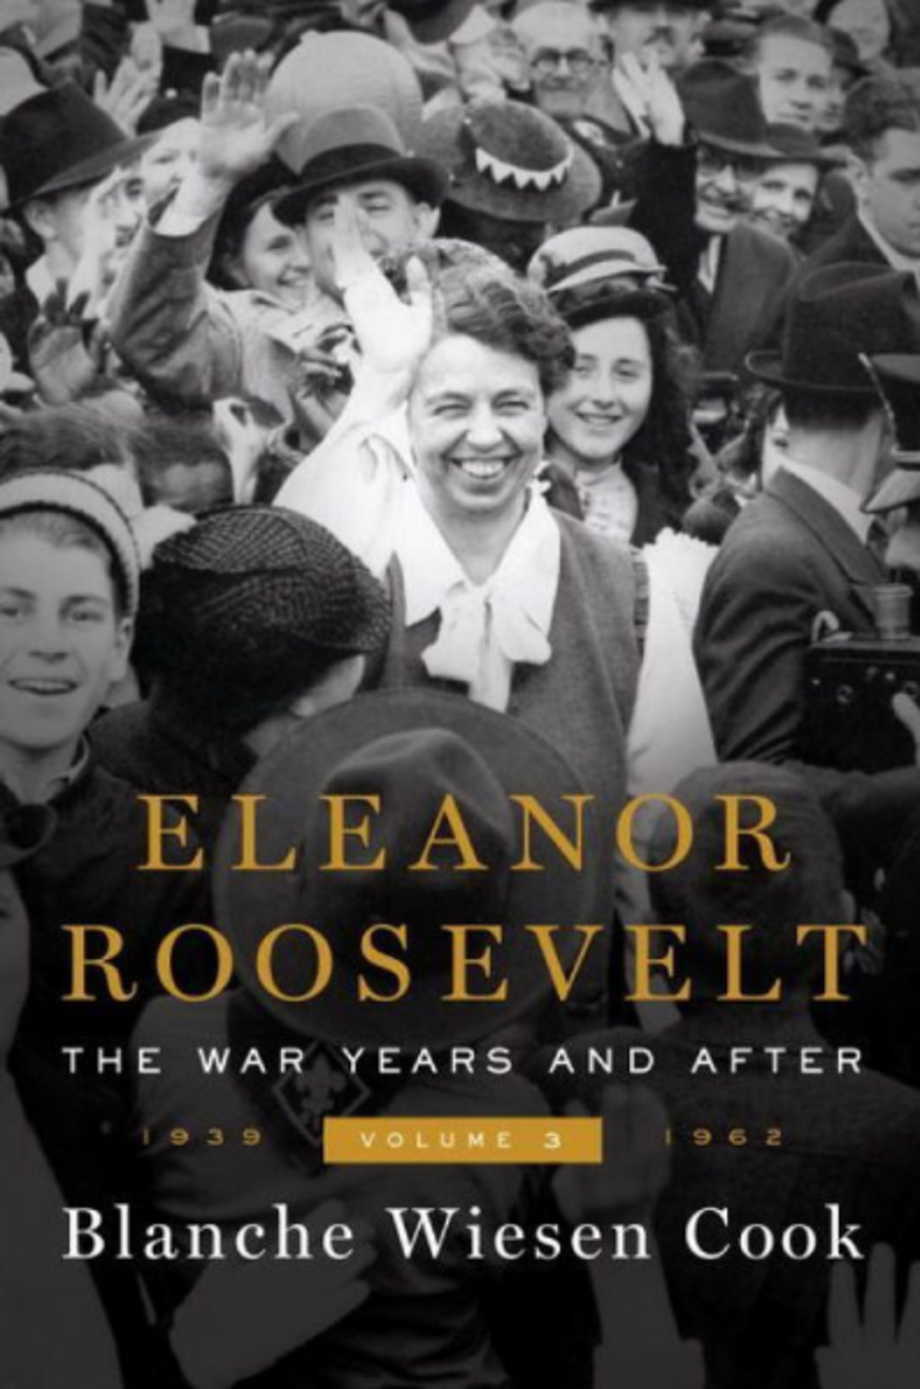 Eleanor Roosevelt, Volume 3: The War Years and After, 1939-1962, Blanche Wiesen Cook (Viking)